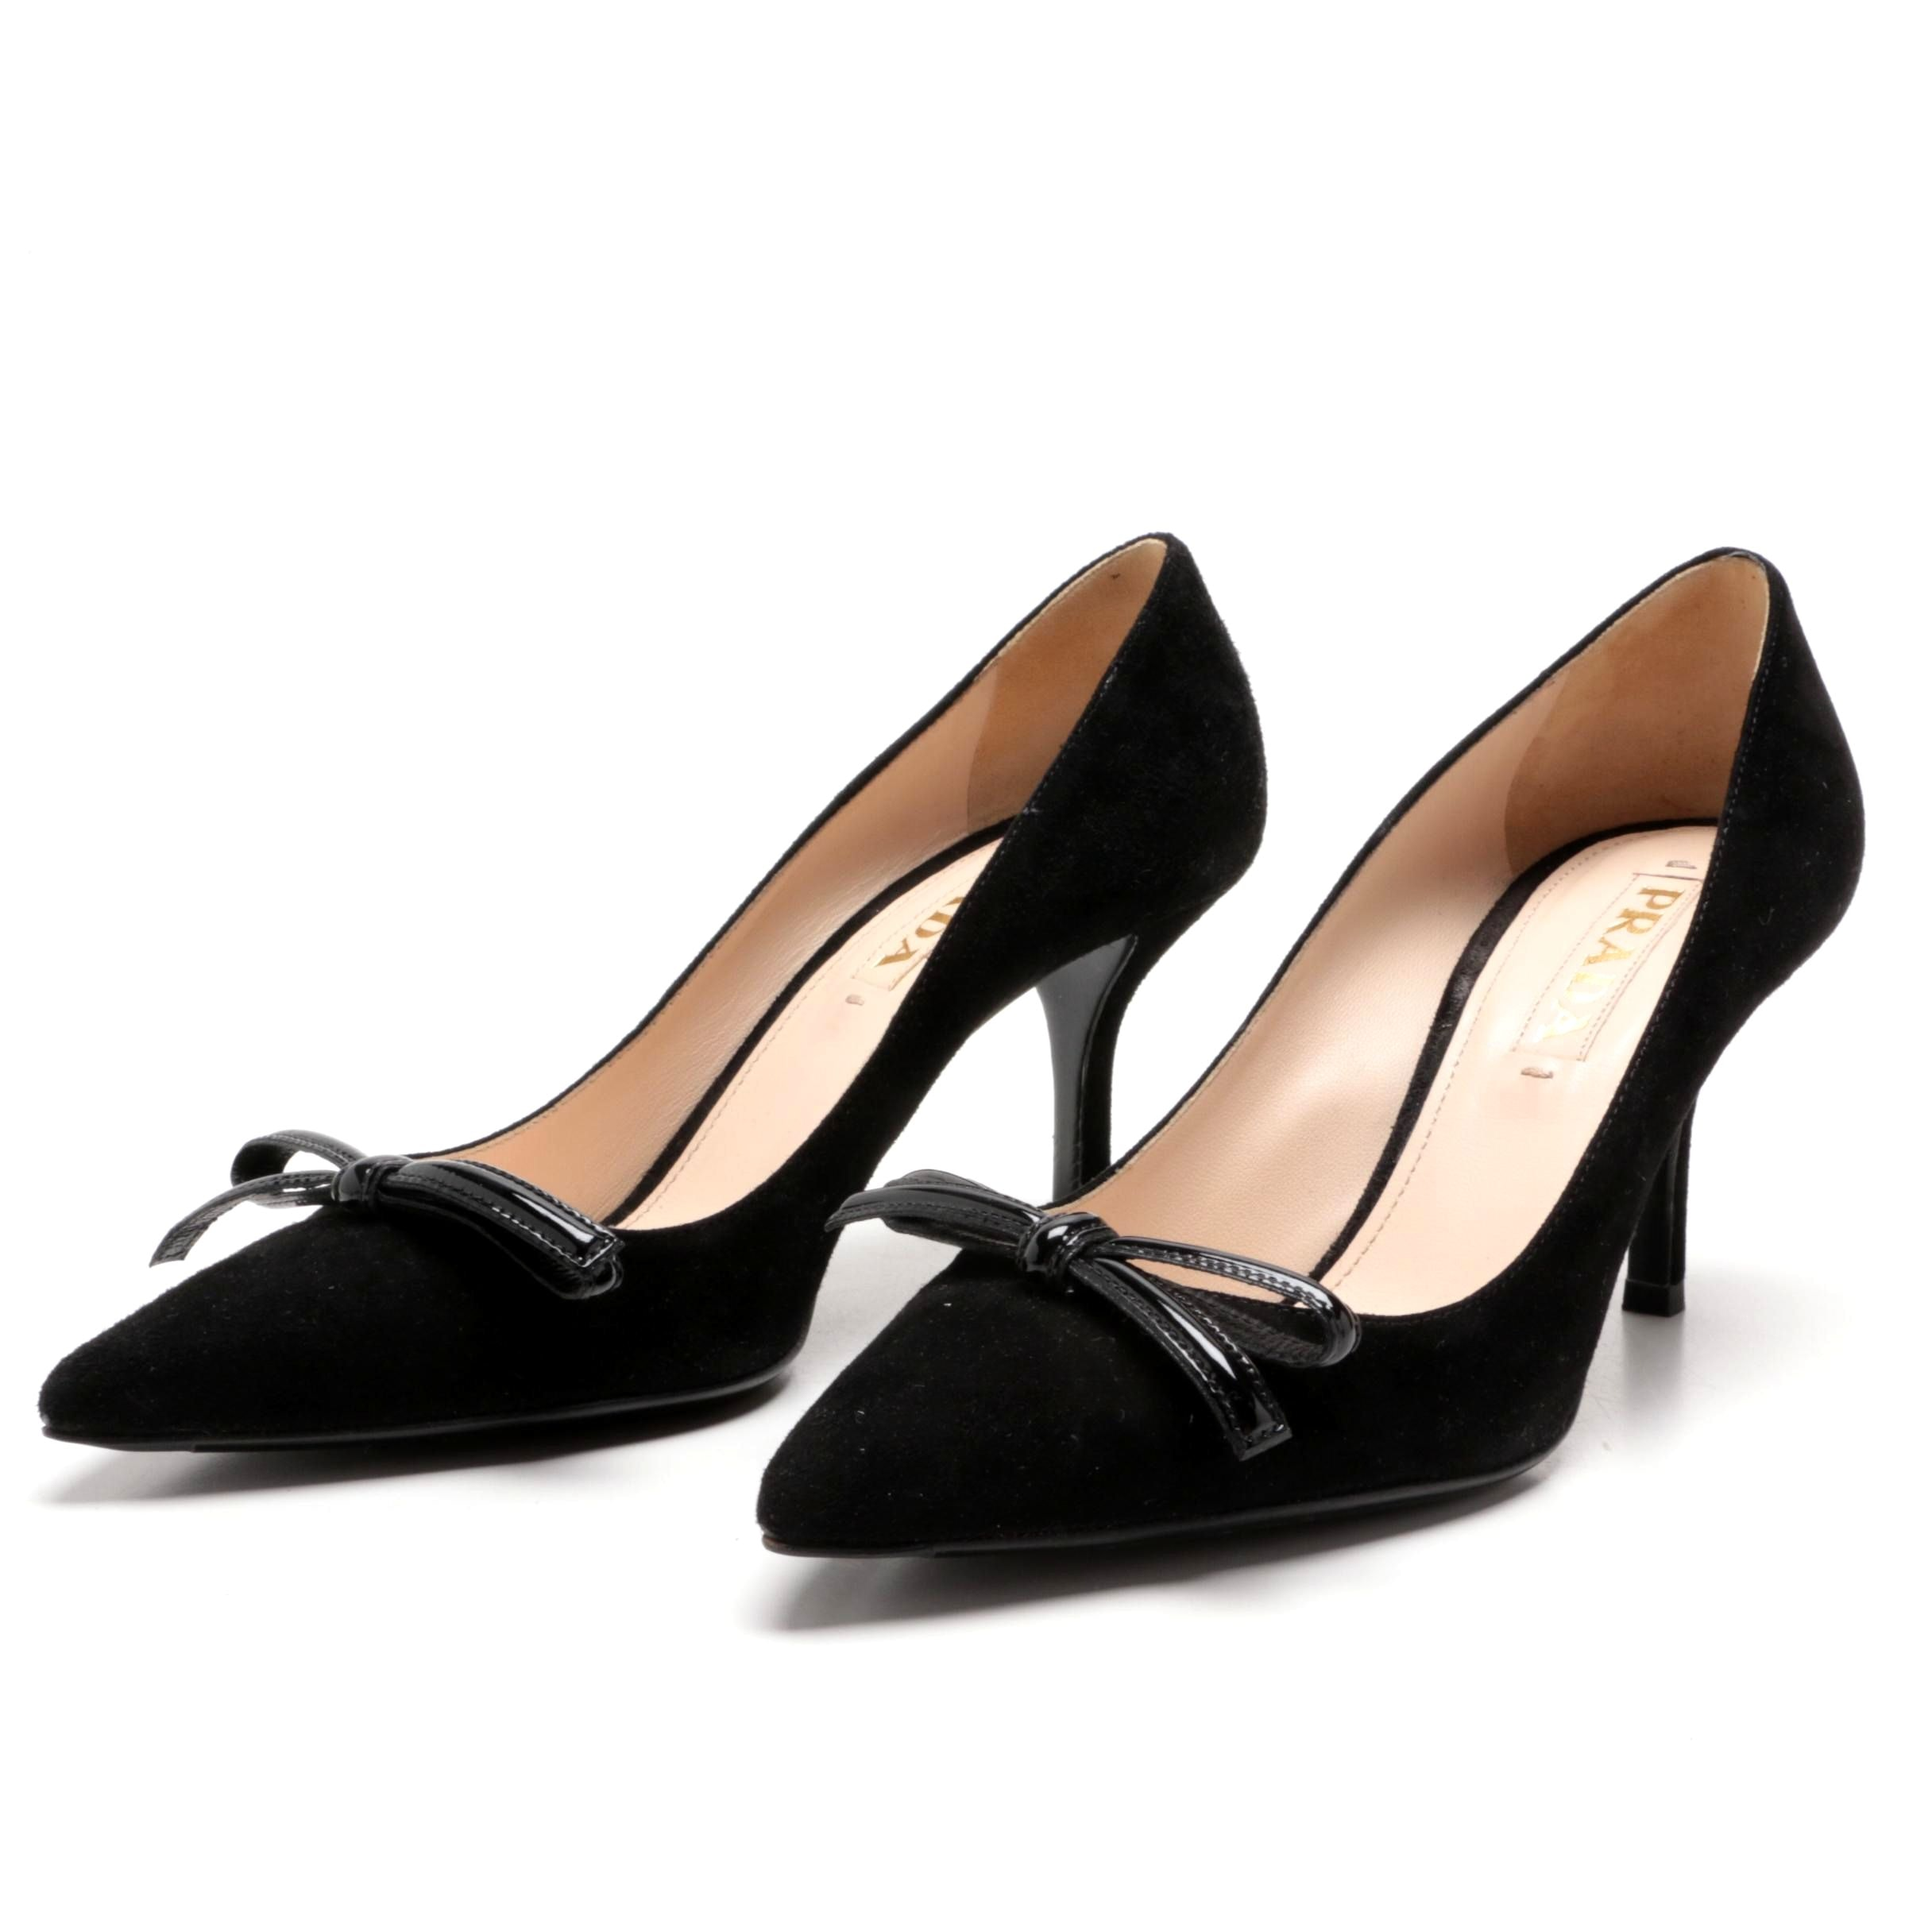 Prada Black Suede Pumps with Patent Leather Bow